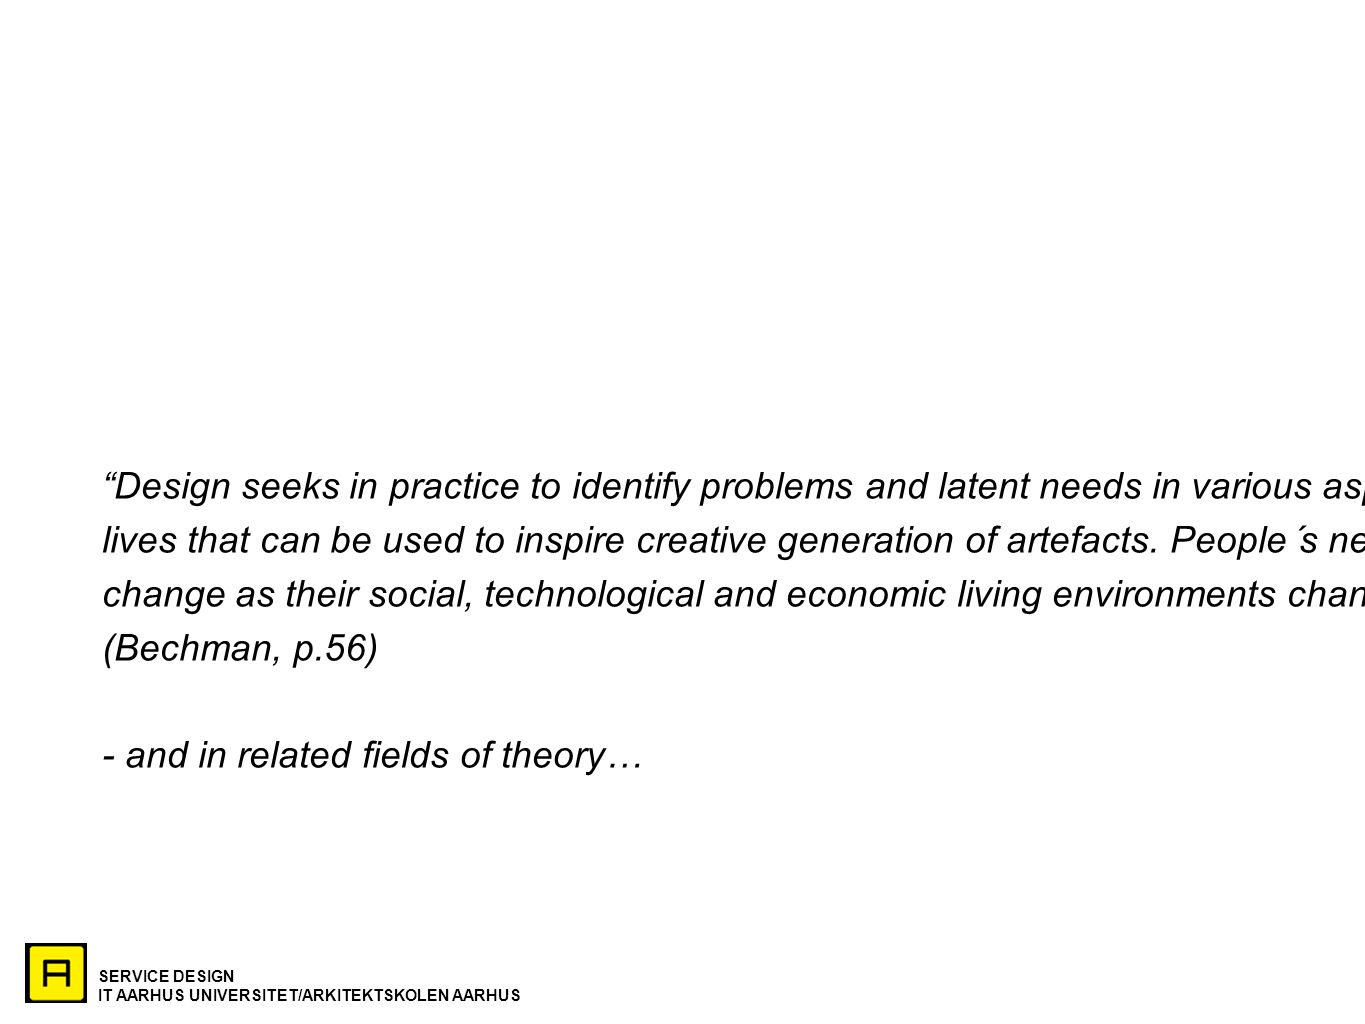 Design seeks in practice to identify problems and latent needs in various aspects of people´s